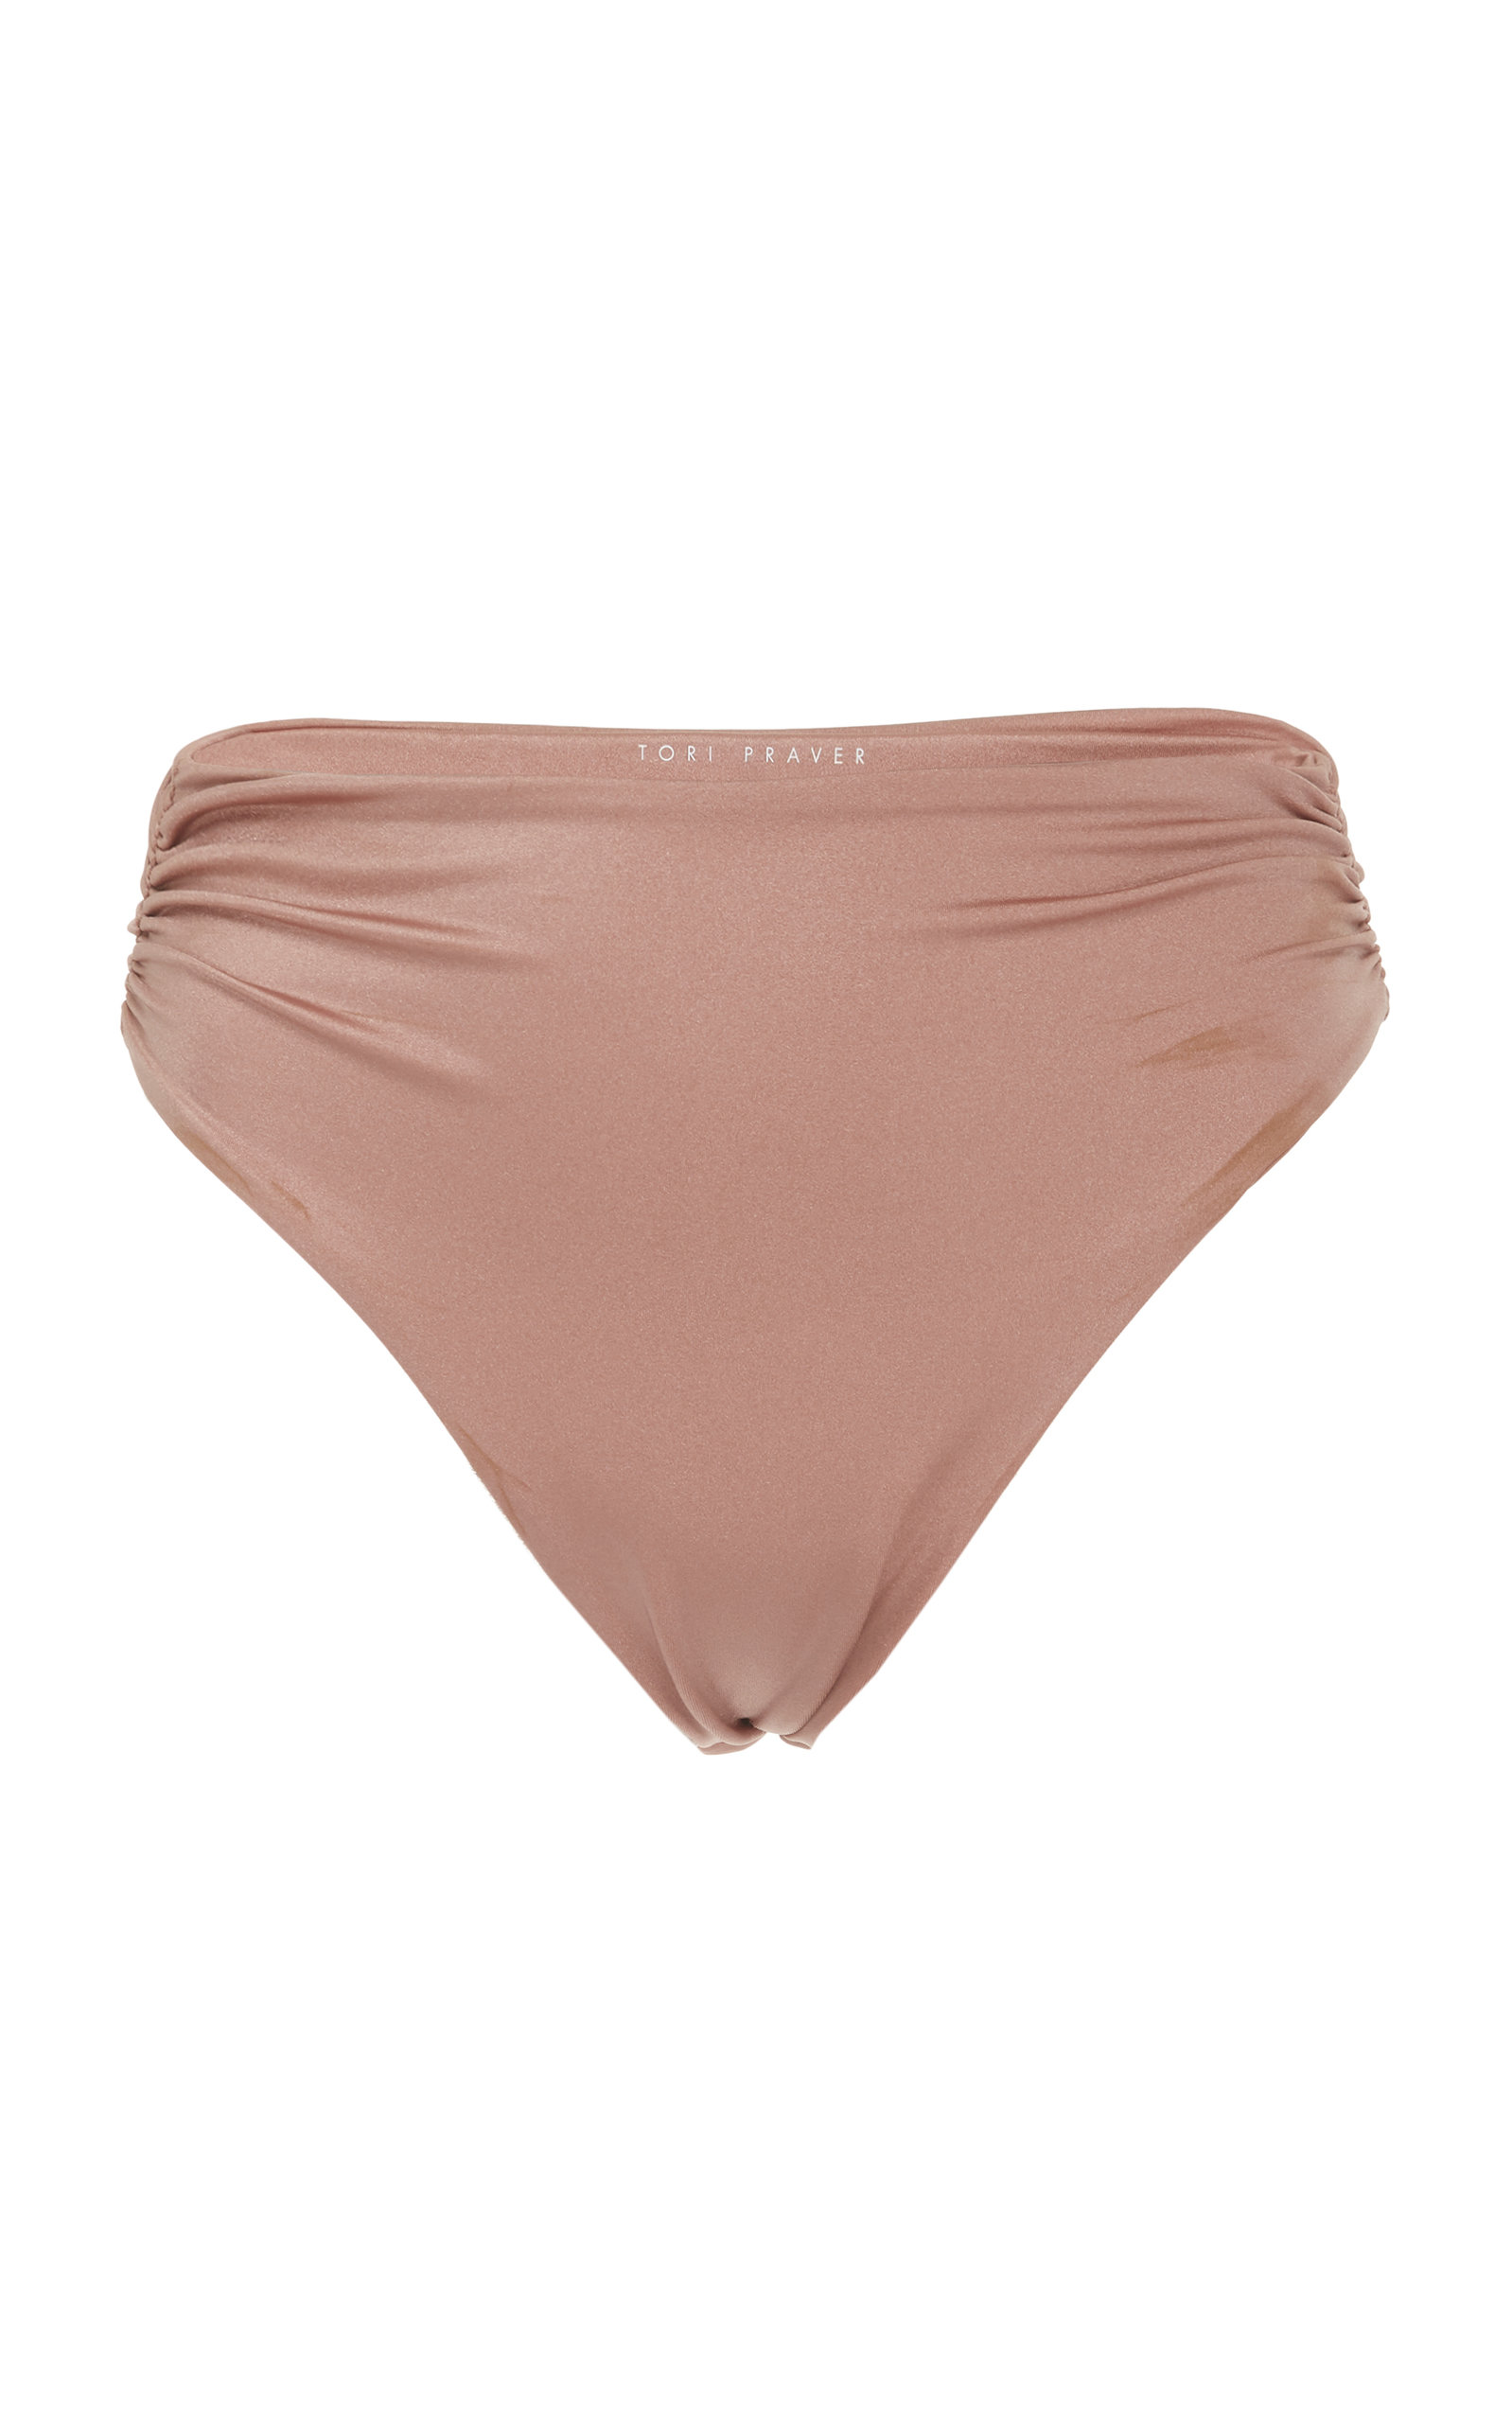 TORI PRAVER Symone Rosy High Waist Cheeky Bottom in Pink